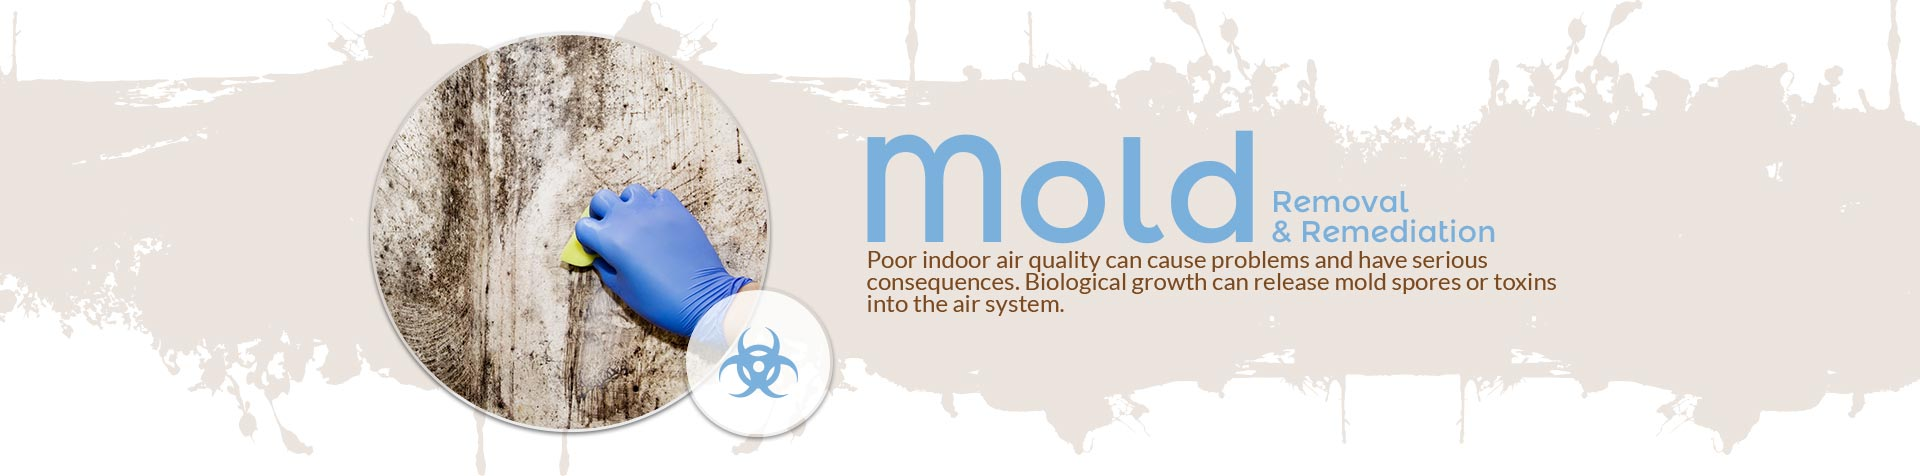 Mold Removal & Mold Remediation